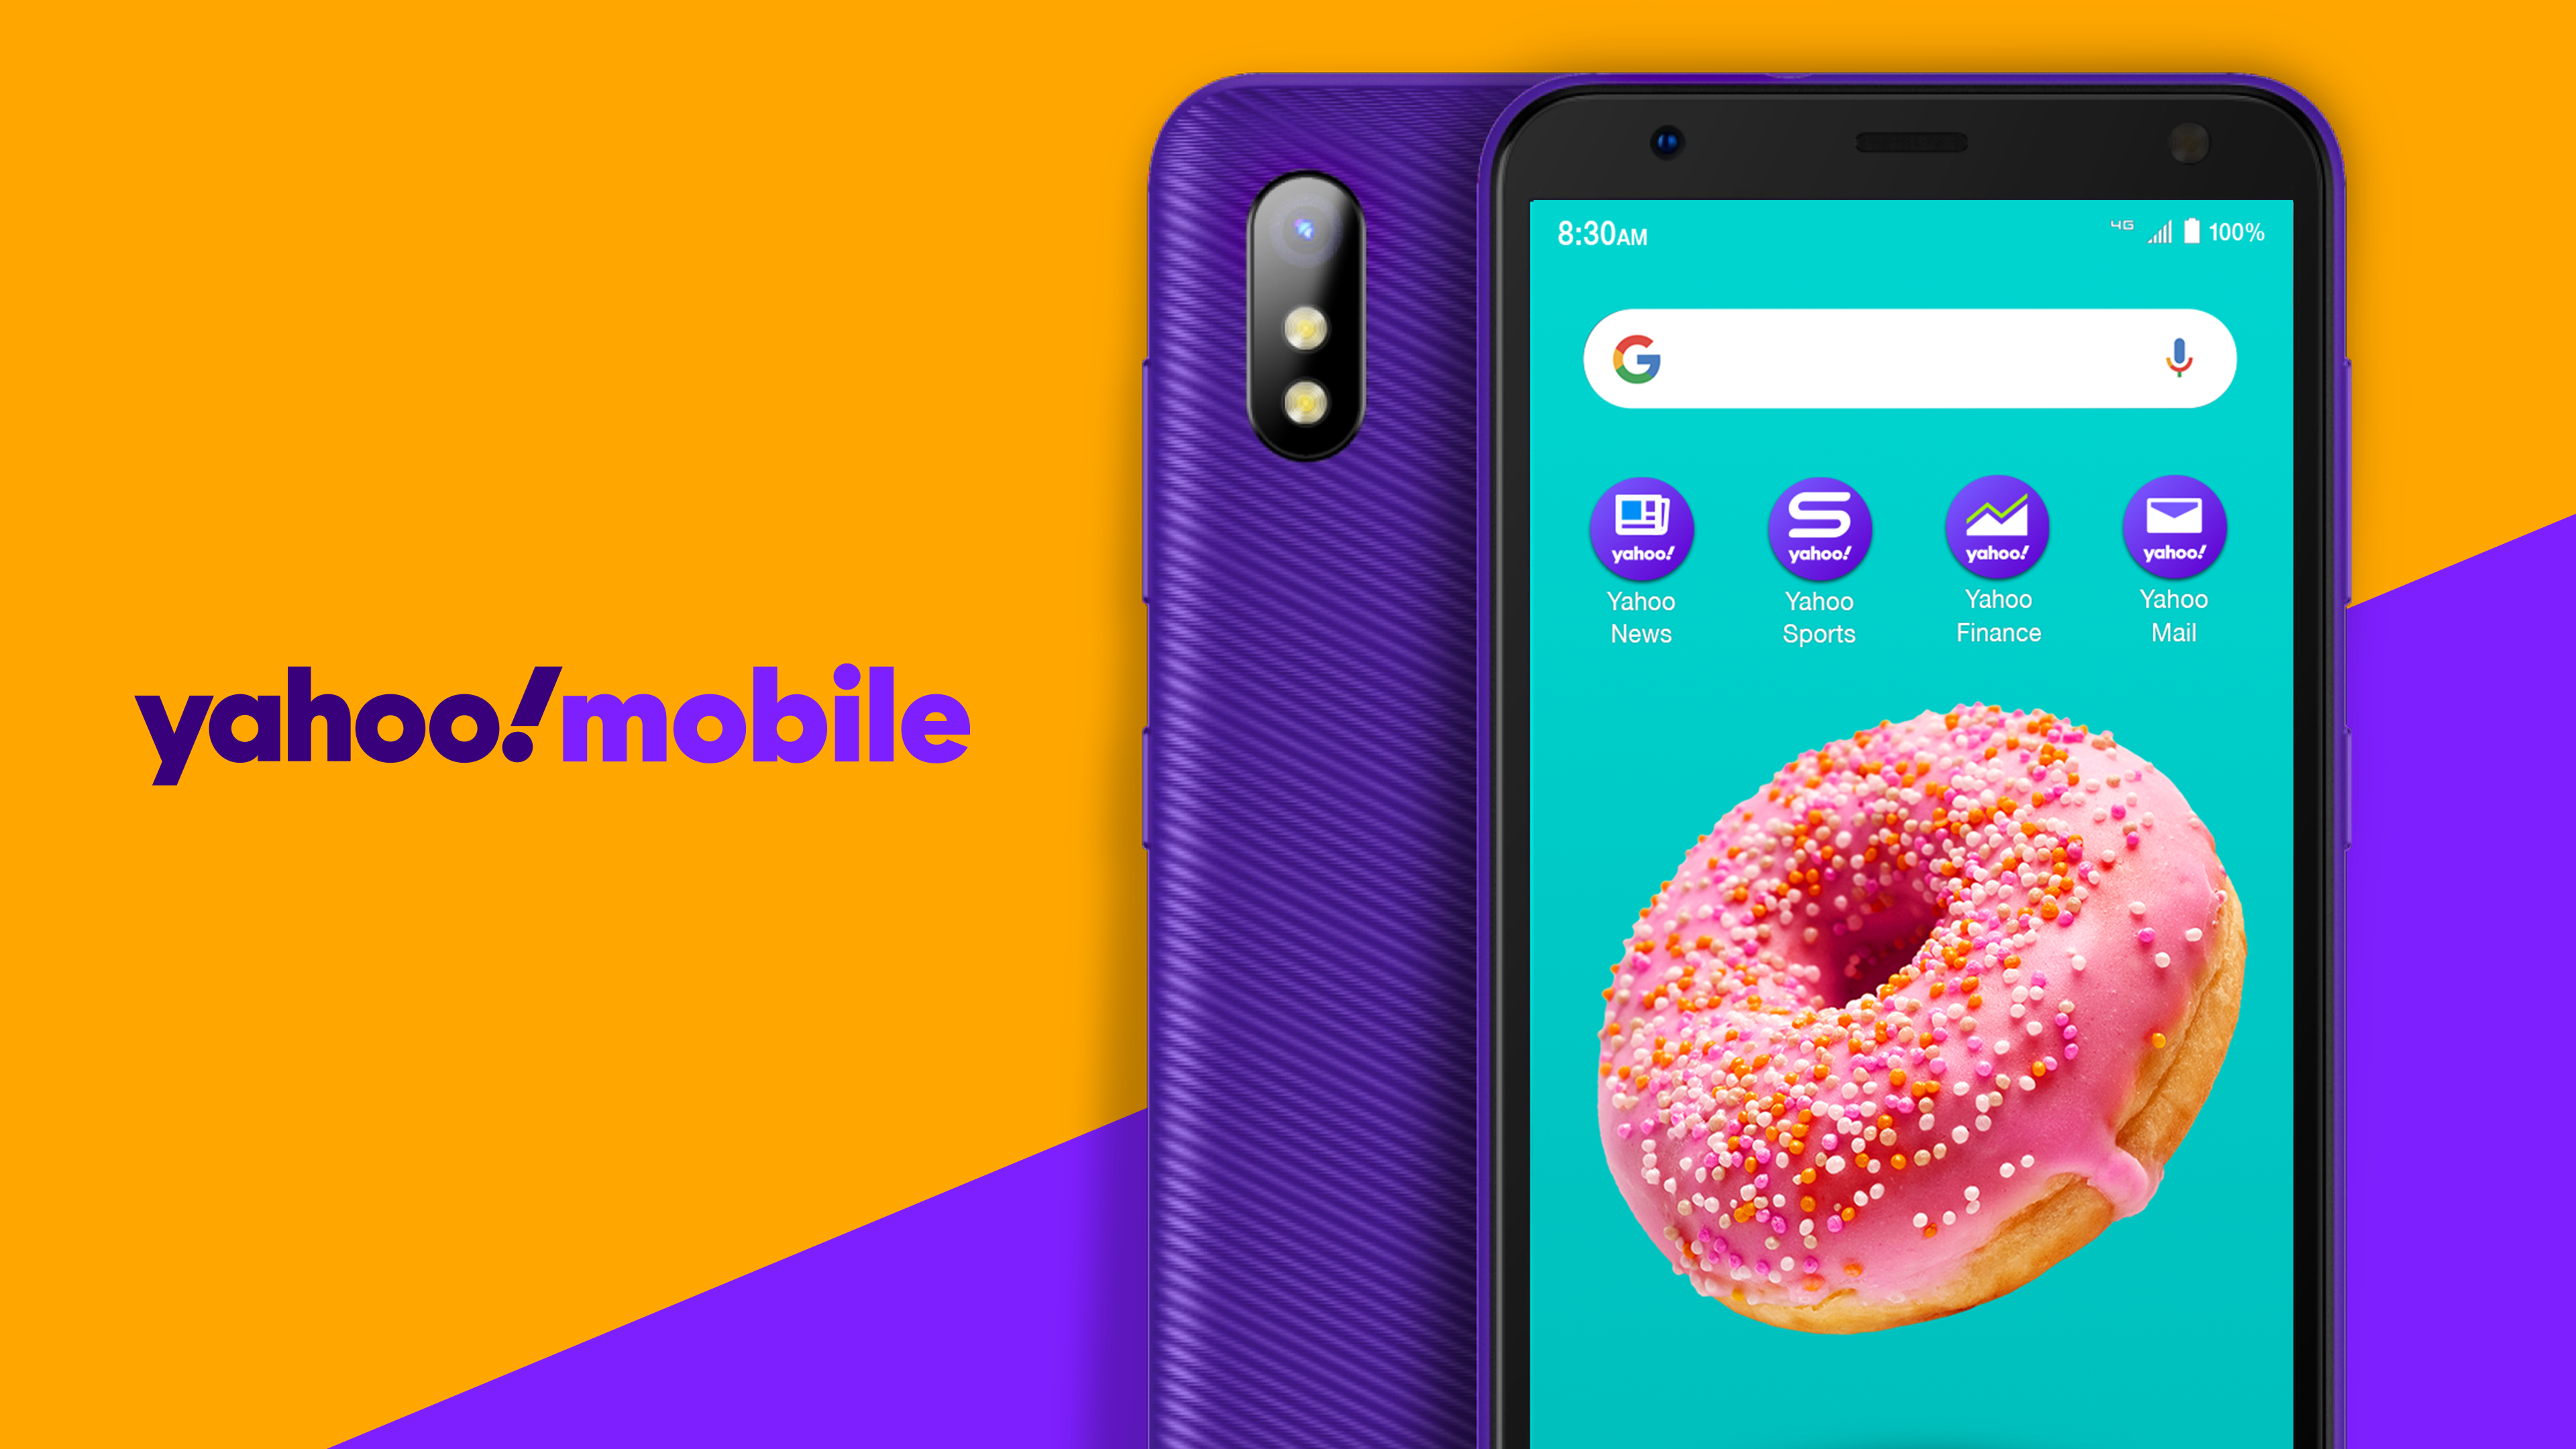 Yahoo! Mobile's first exclusive phone is very purple